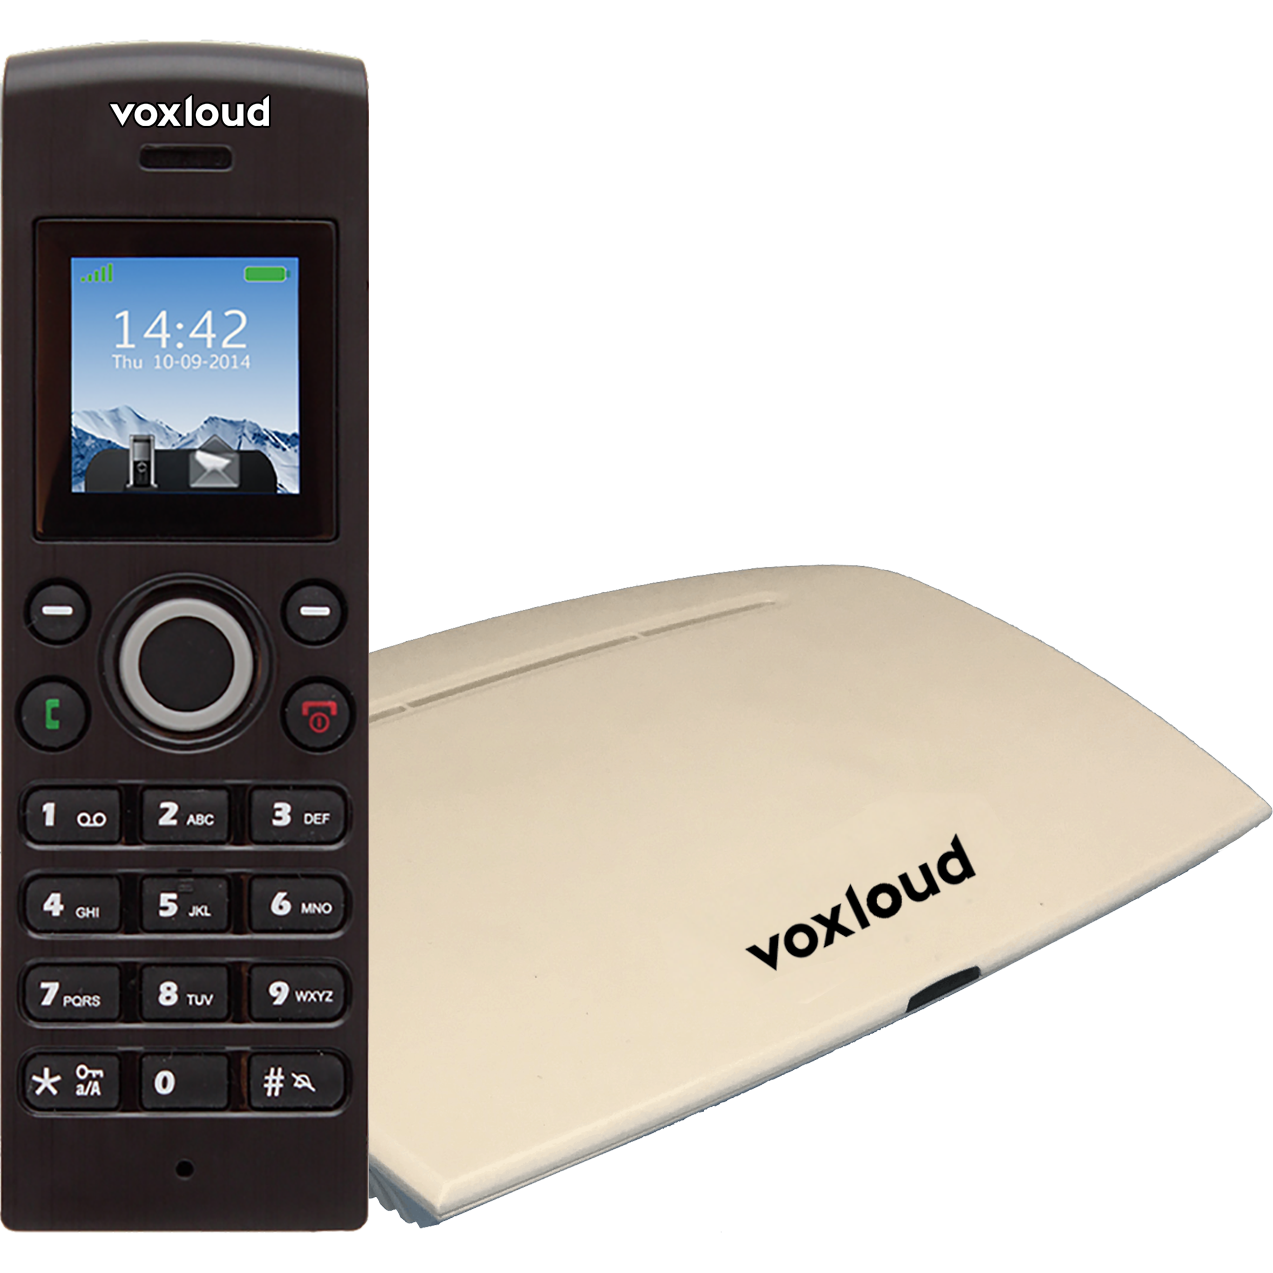 voxloud phone-air-base-cordless-new